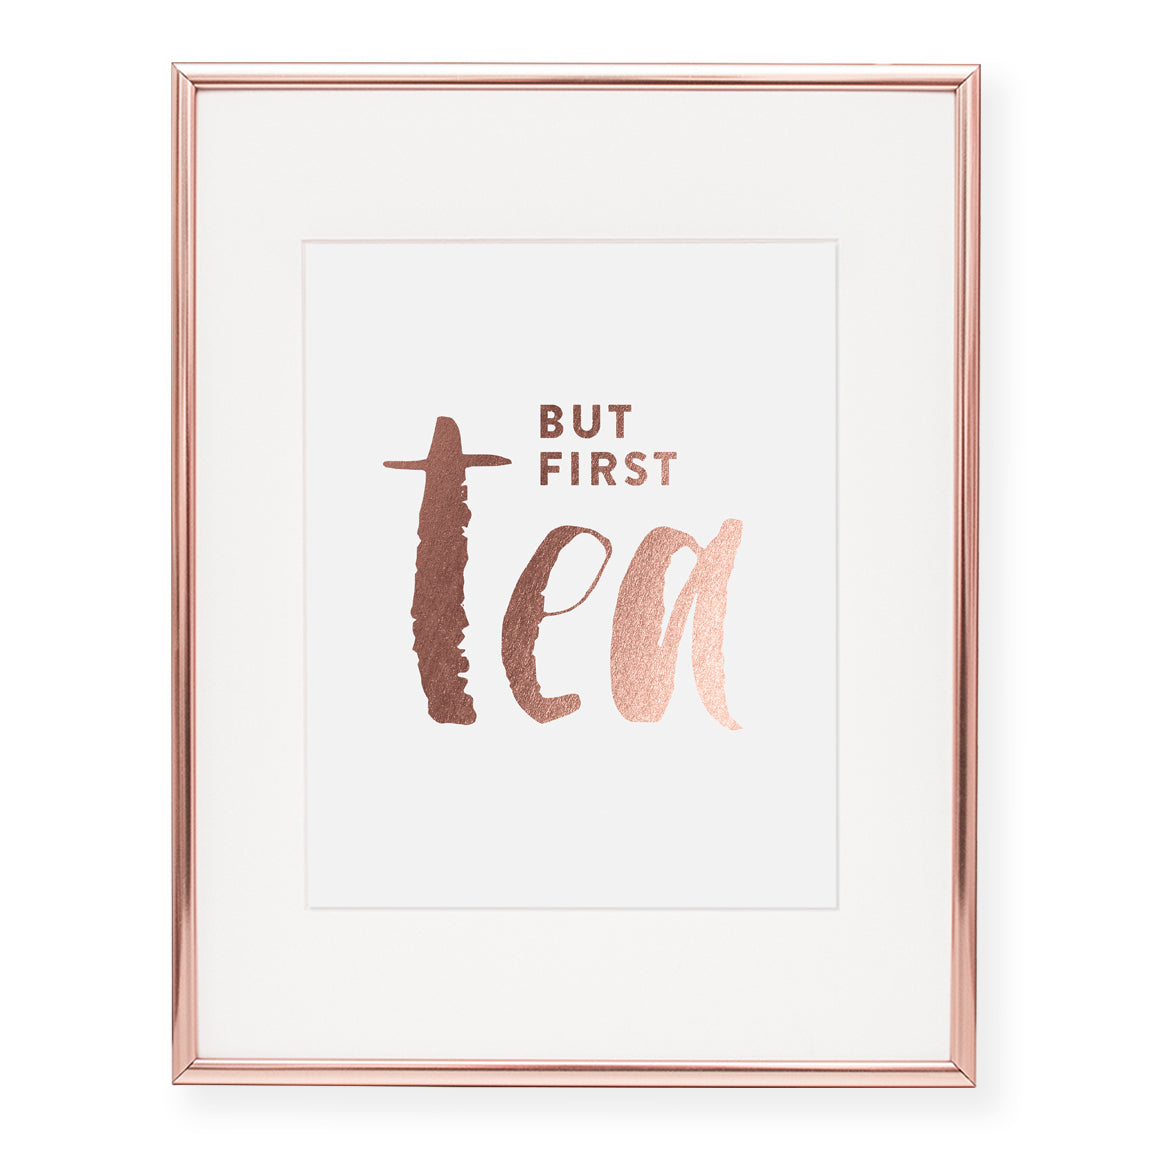 But First Tea Foil Art Print